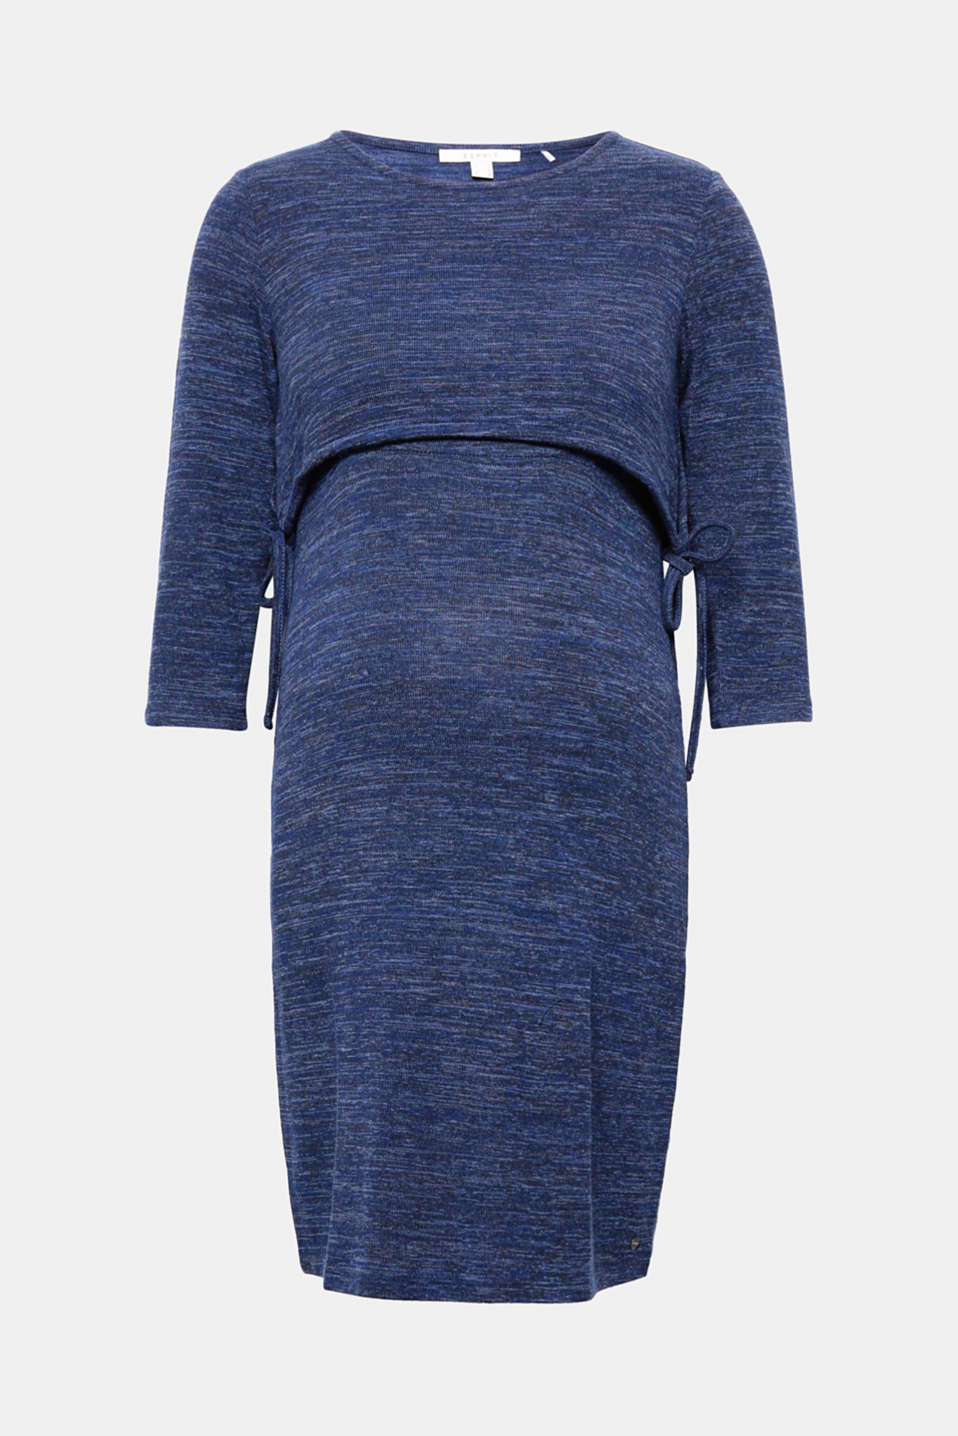 The layered top portion with drawstrings gives this stretch jersey dress a brand new look!